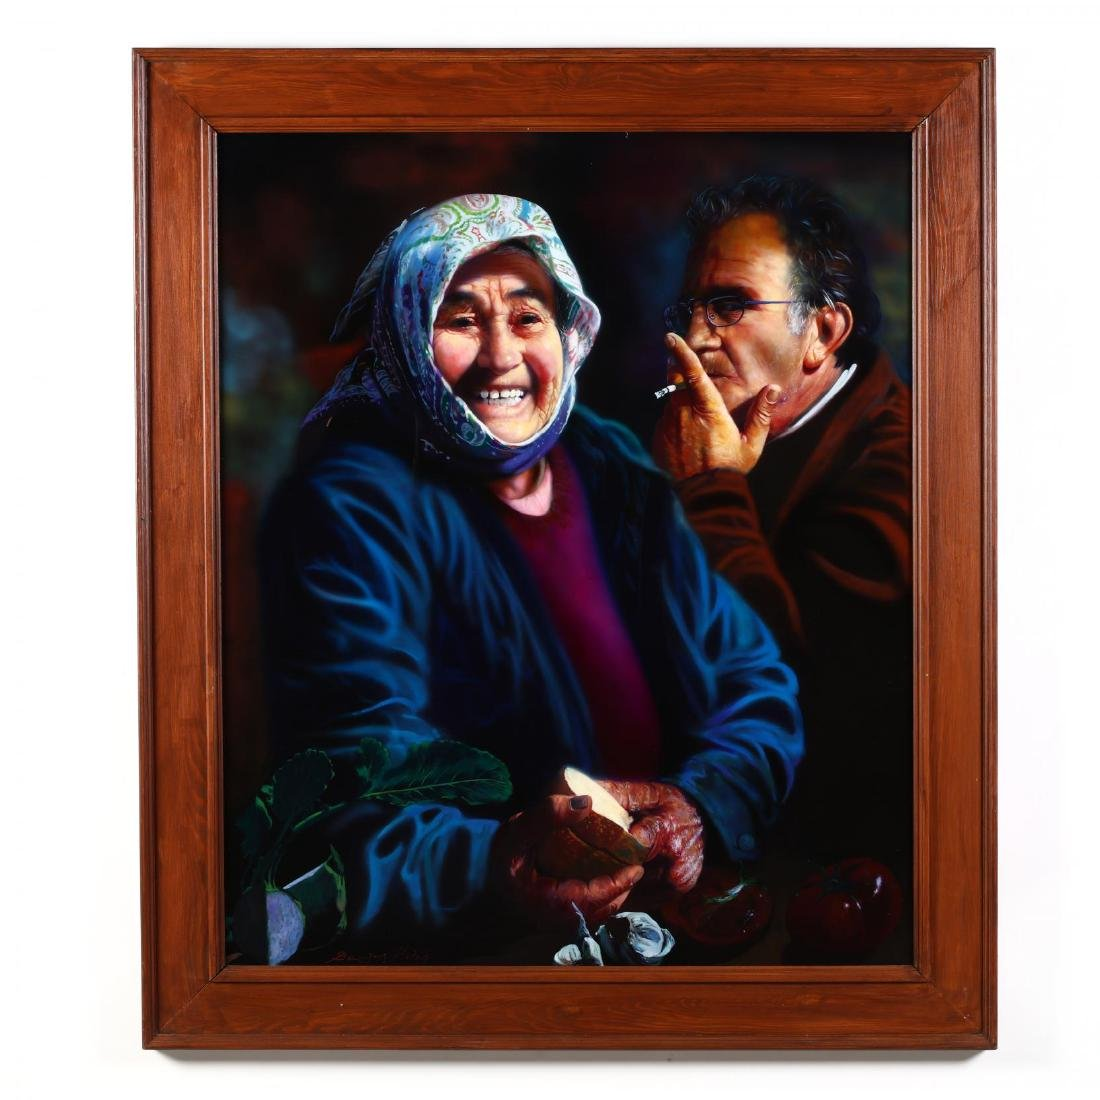 Greek or Cypriot Photo-Realist Painting of an Aging